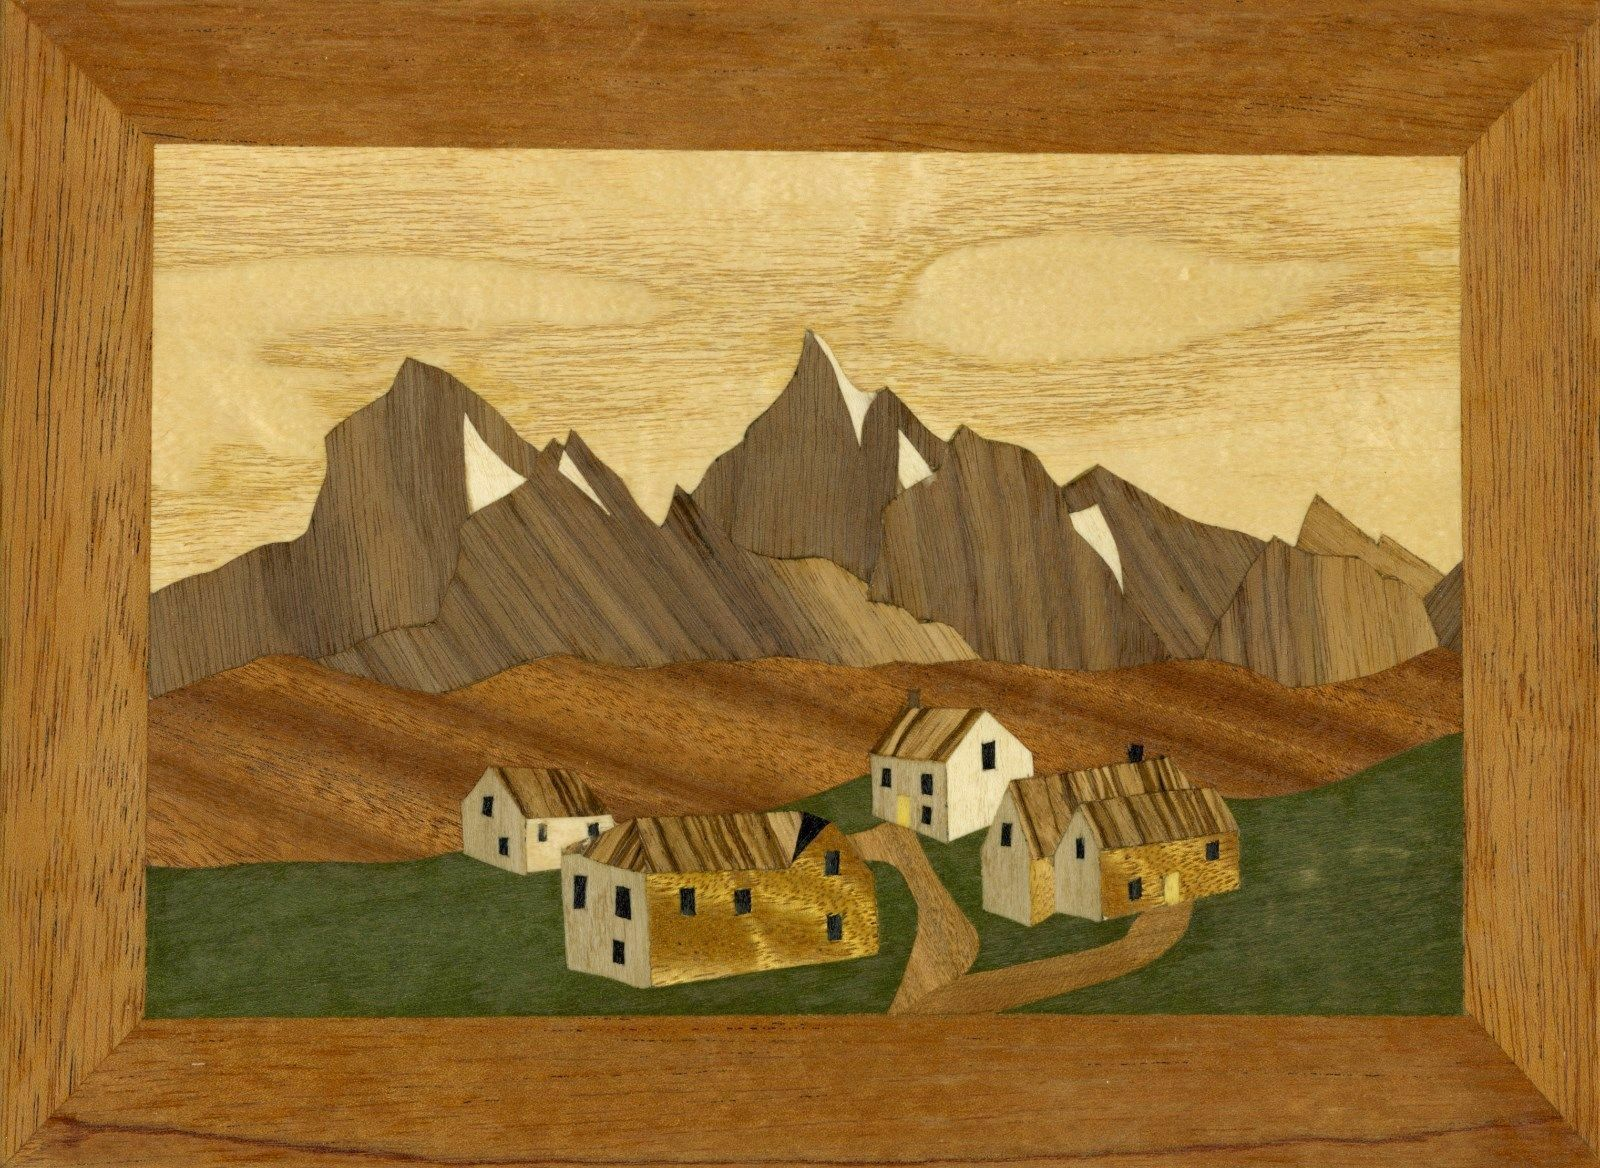 Pyrenean Village  Traditionell nybörjare Marquetry Craft Kit av Cove arbetarhop